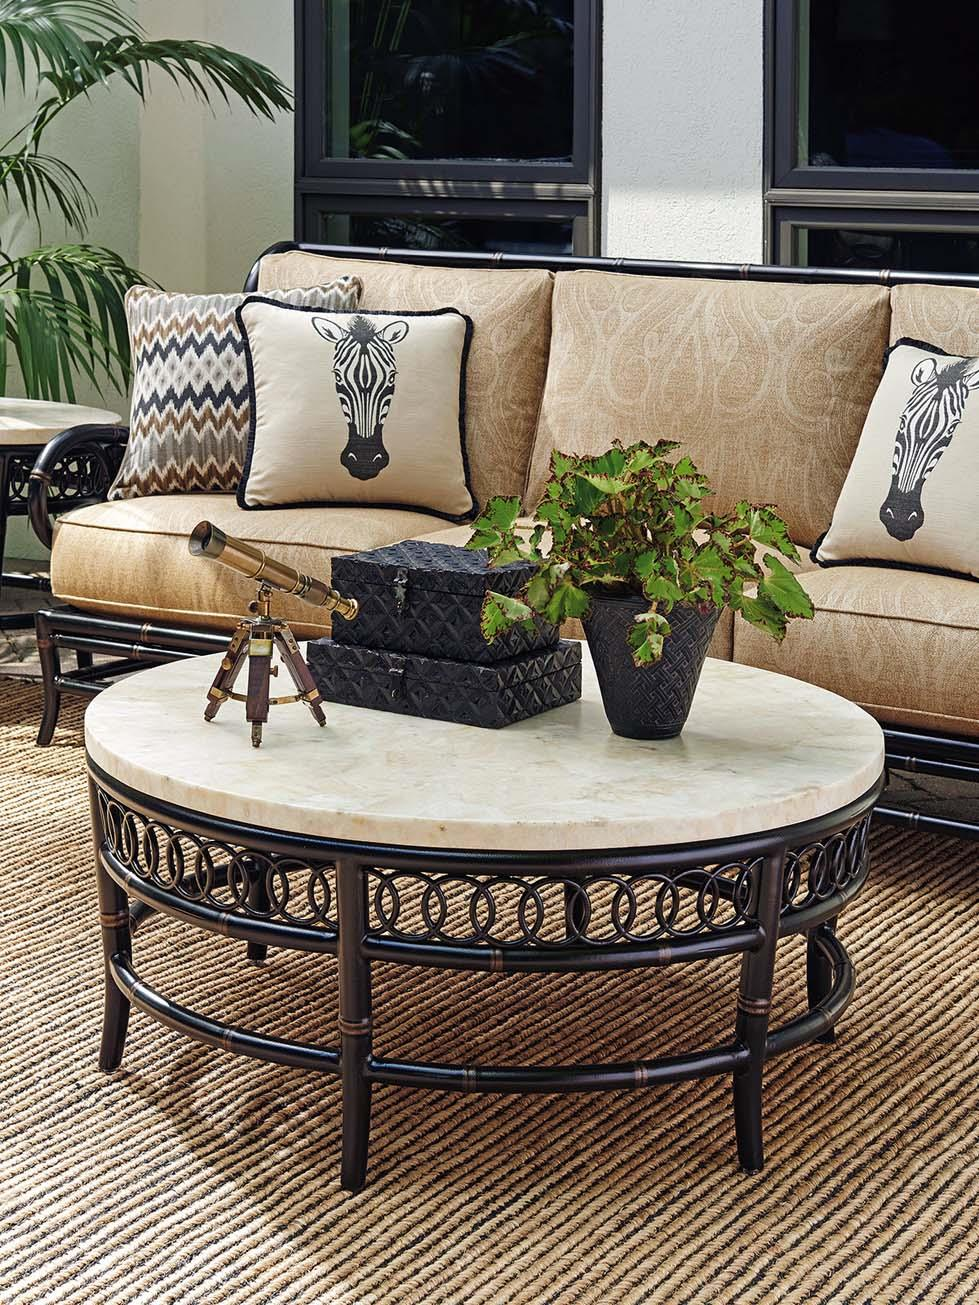 tommy bahama outdoor living marimba 3237 943 outdoor cocktail table with white crystal stone top. Black Bedroom Furniture Sets. Home Design Ideas